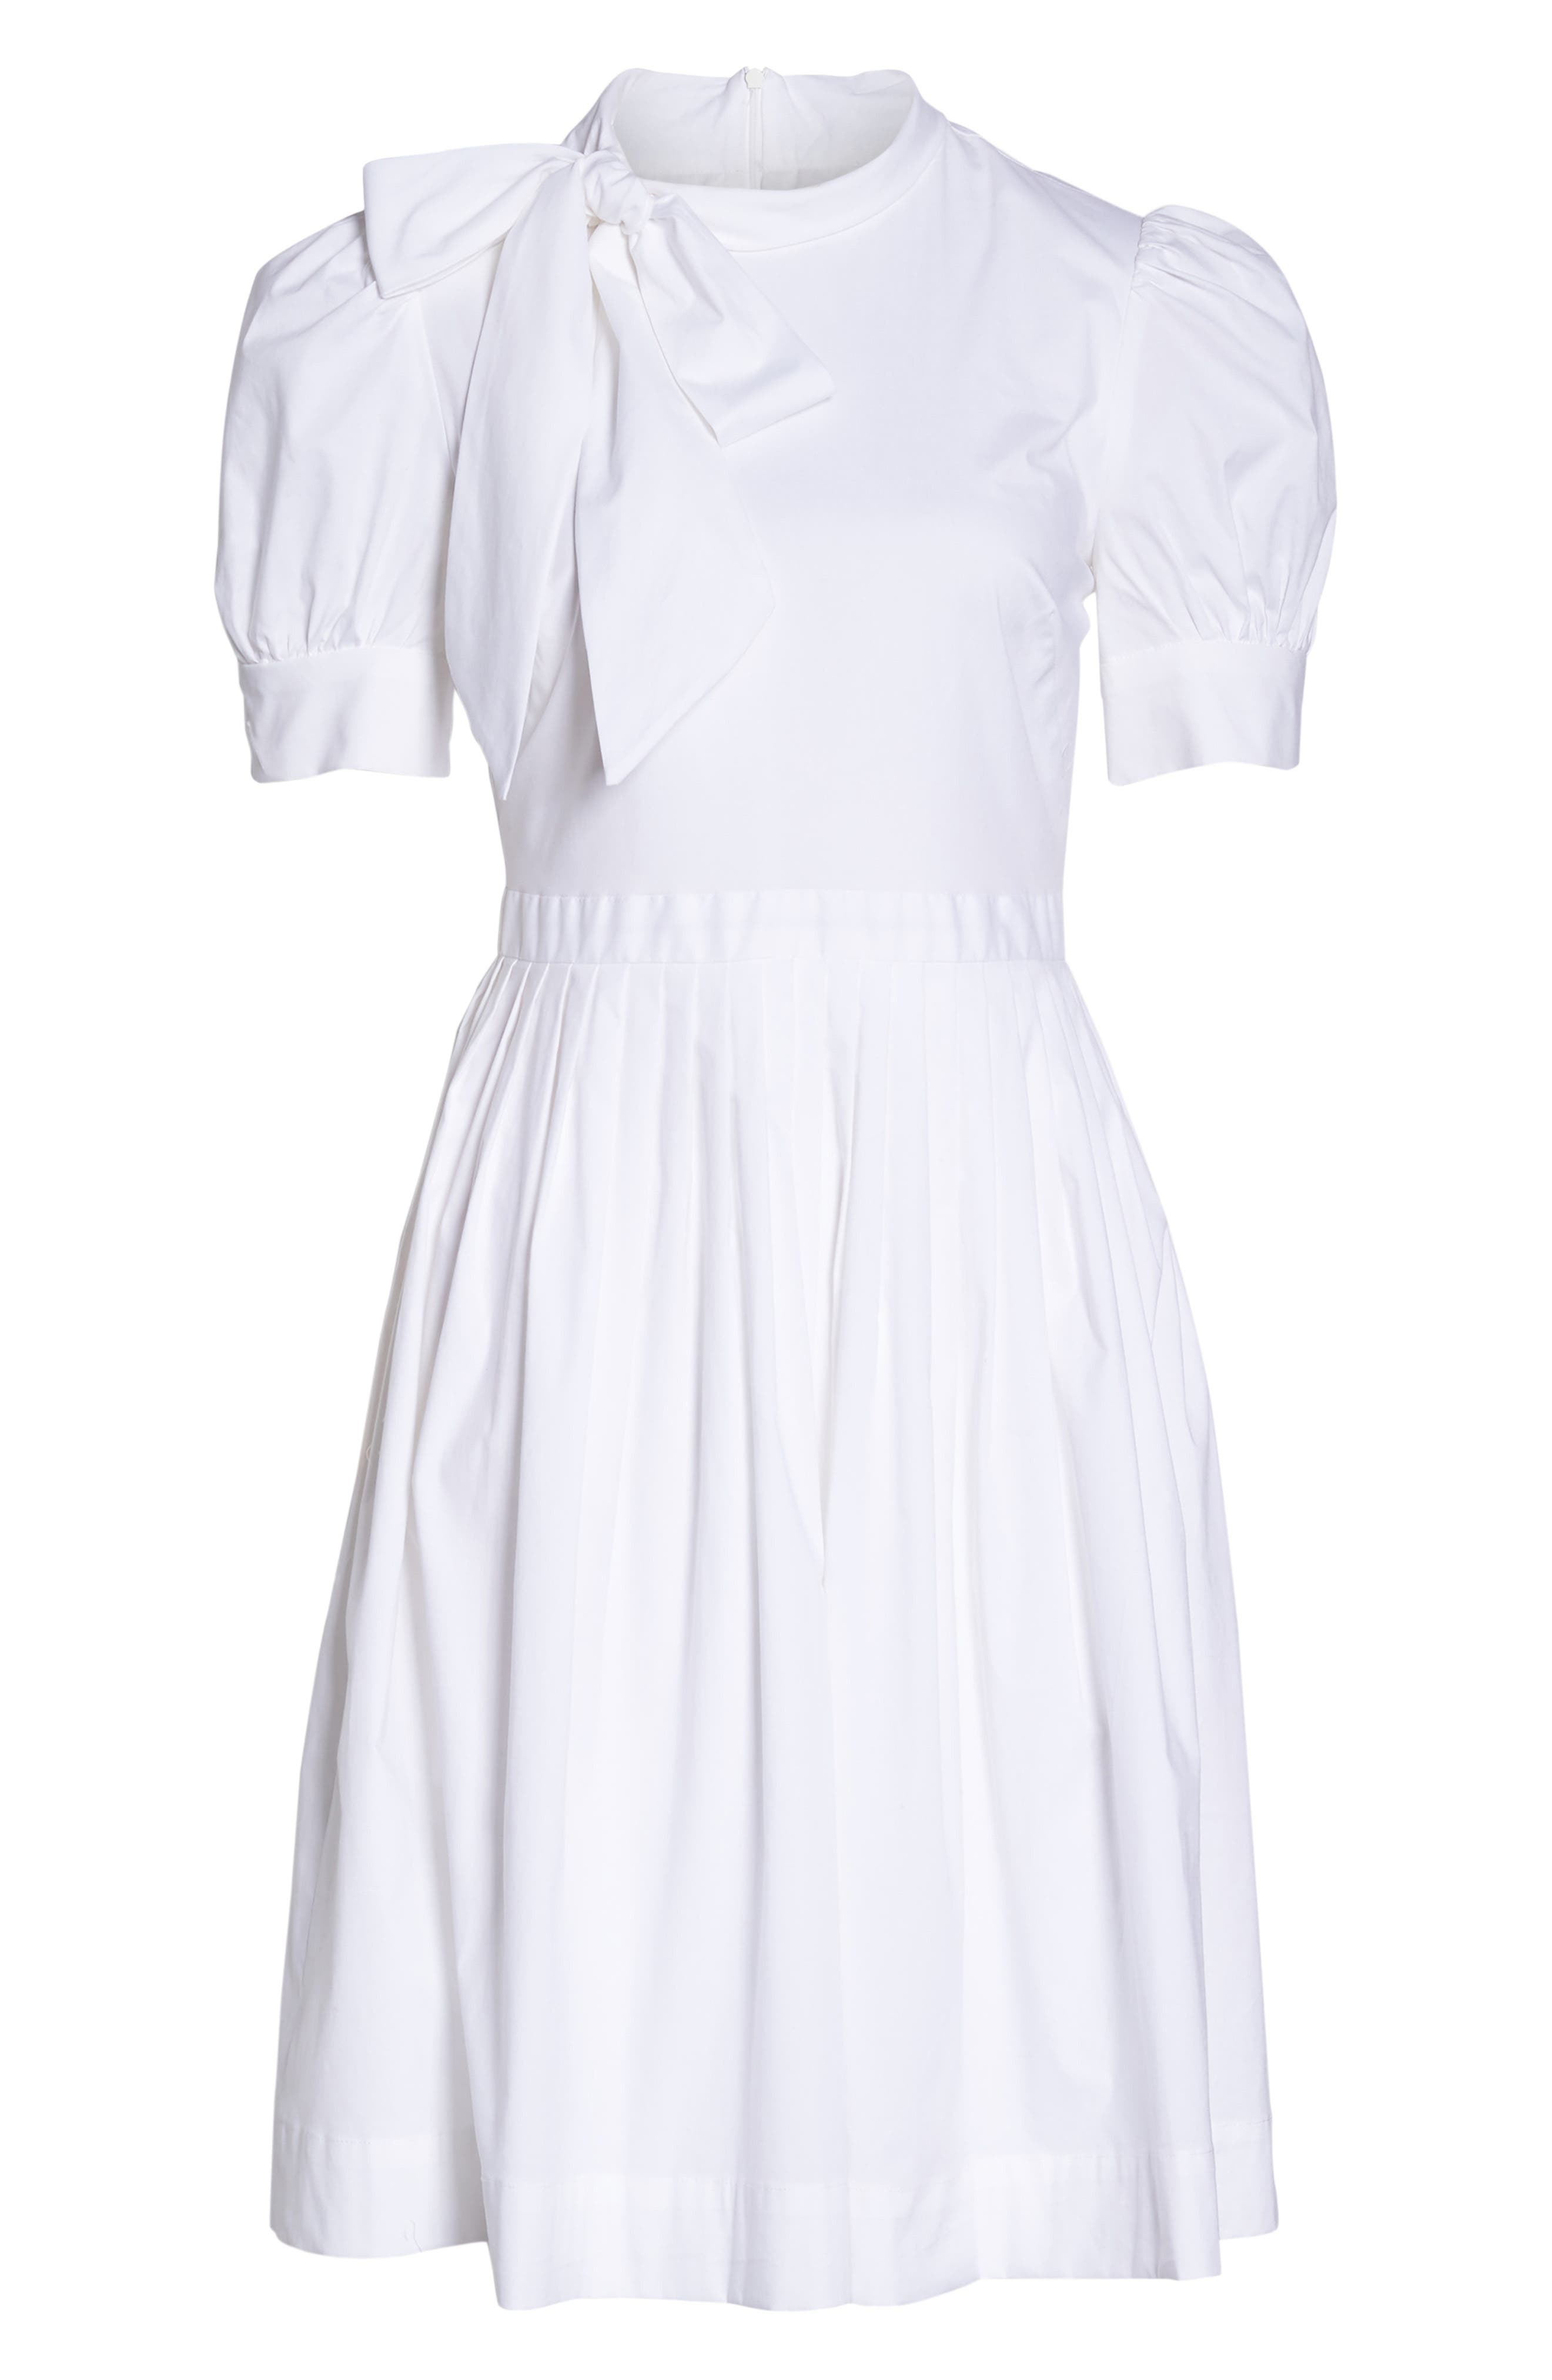 Hanna Puff Sleeve Cotton Poplin Dress,                             Alternate thumbnail 8, color,                             White